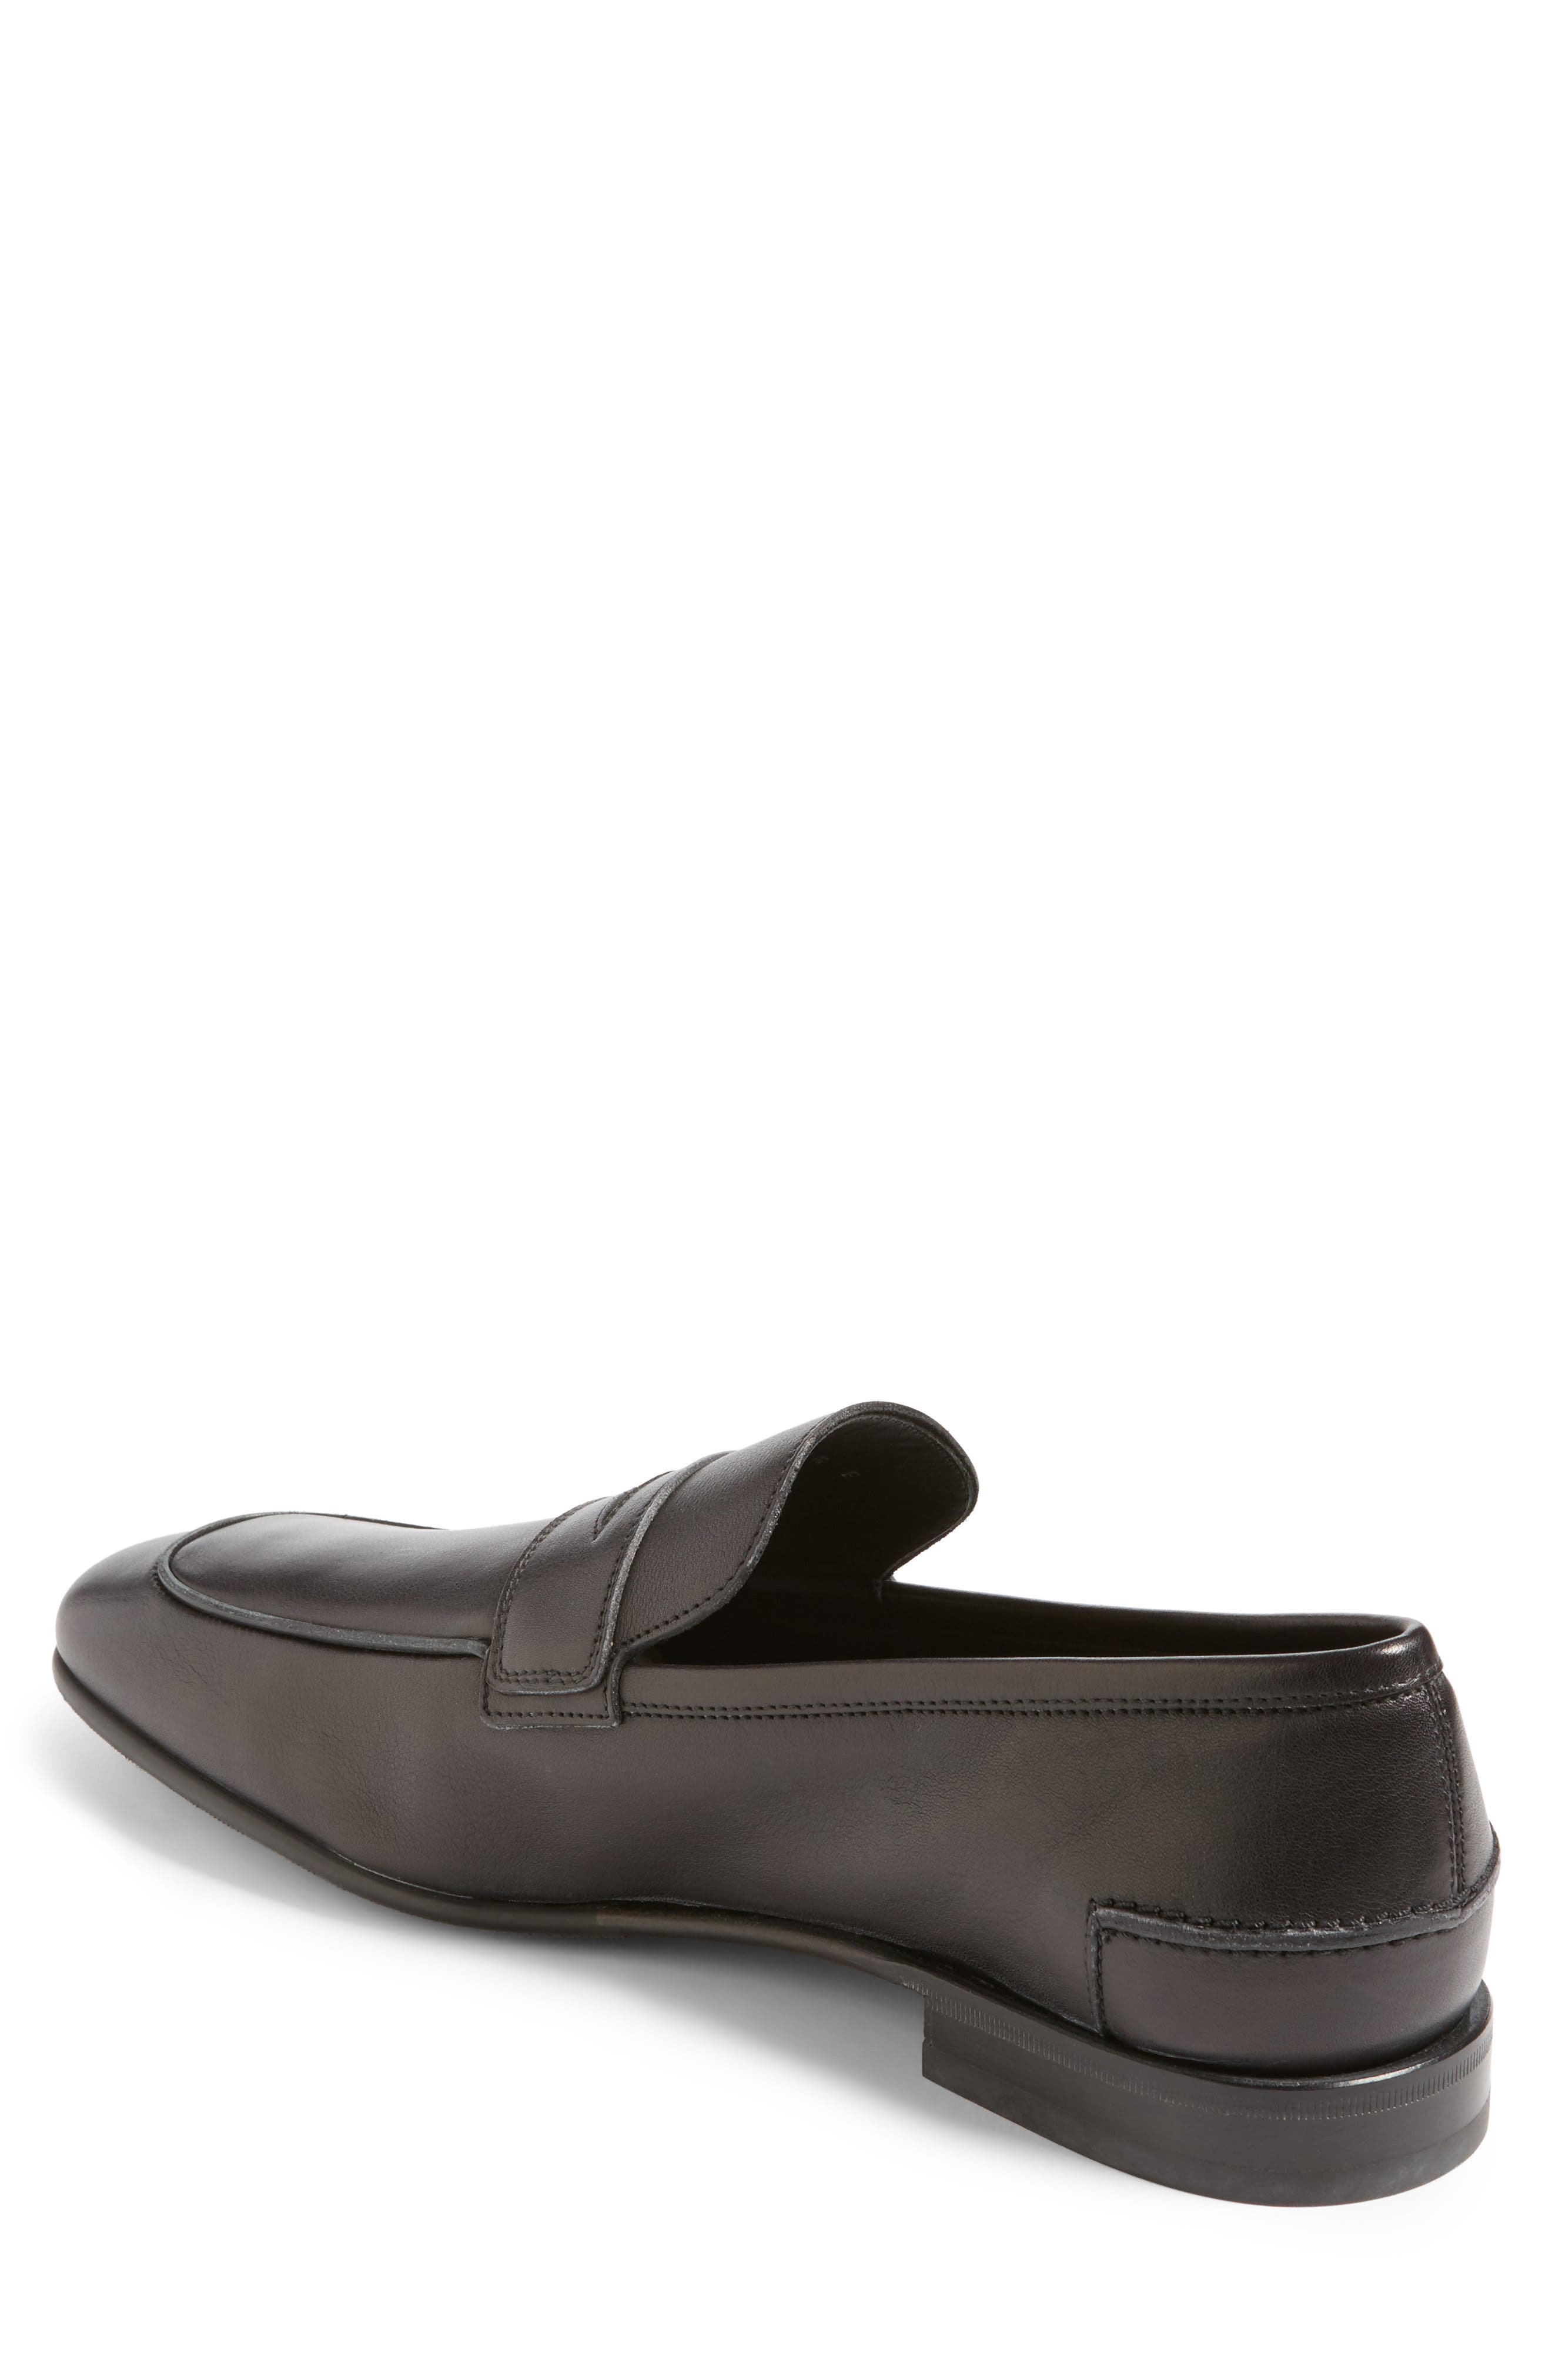 Duchamp Penny Loafer,                             Alternate thumbnail 2, color,                             Nero Leather